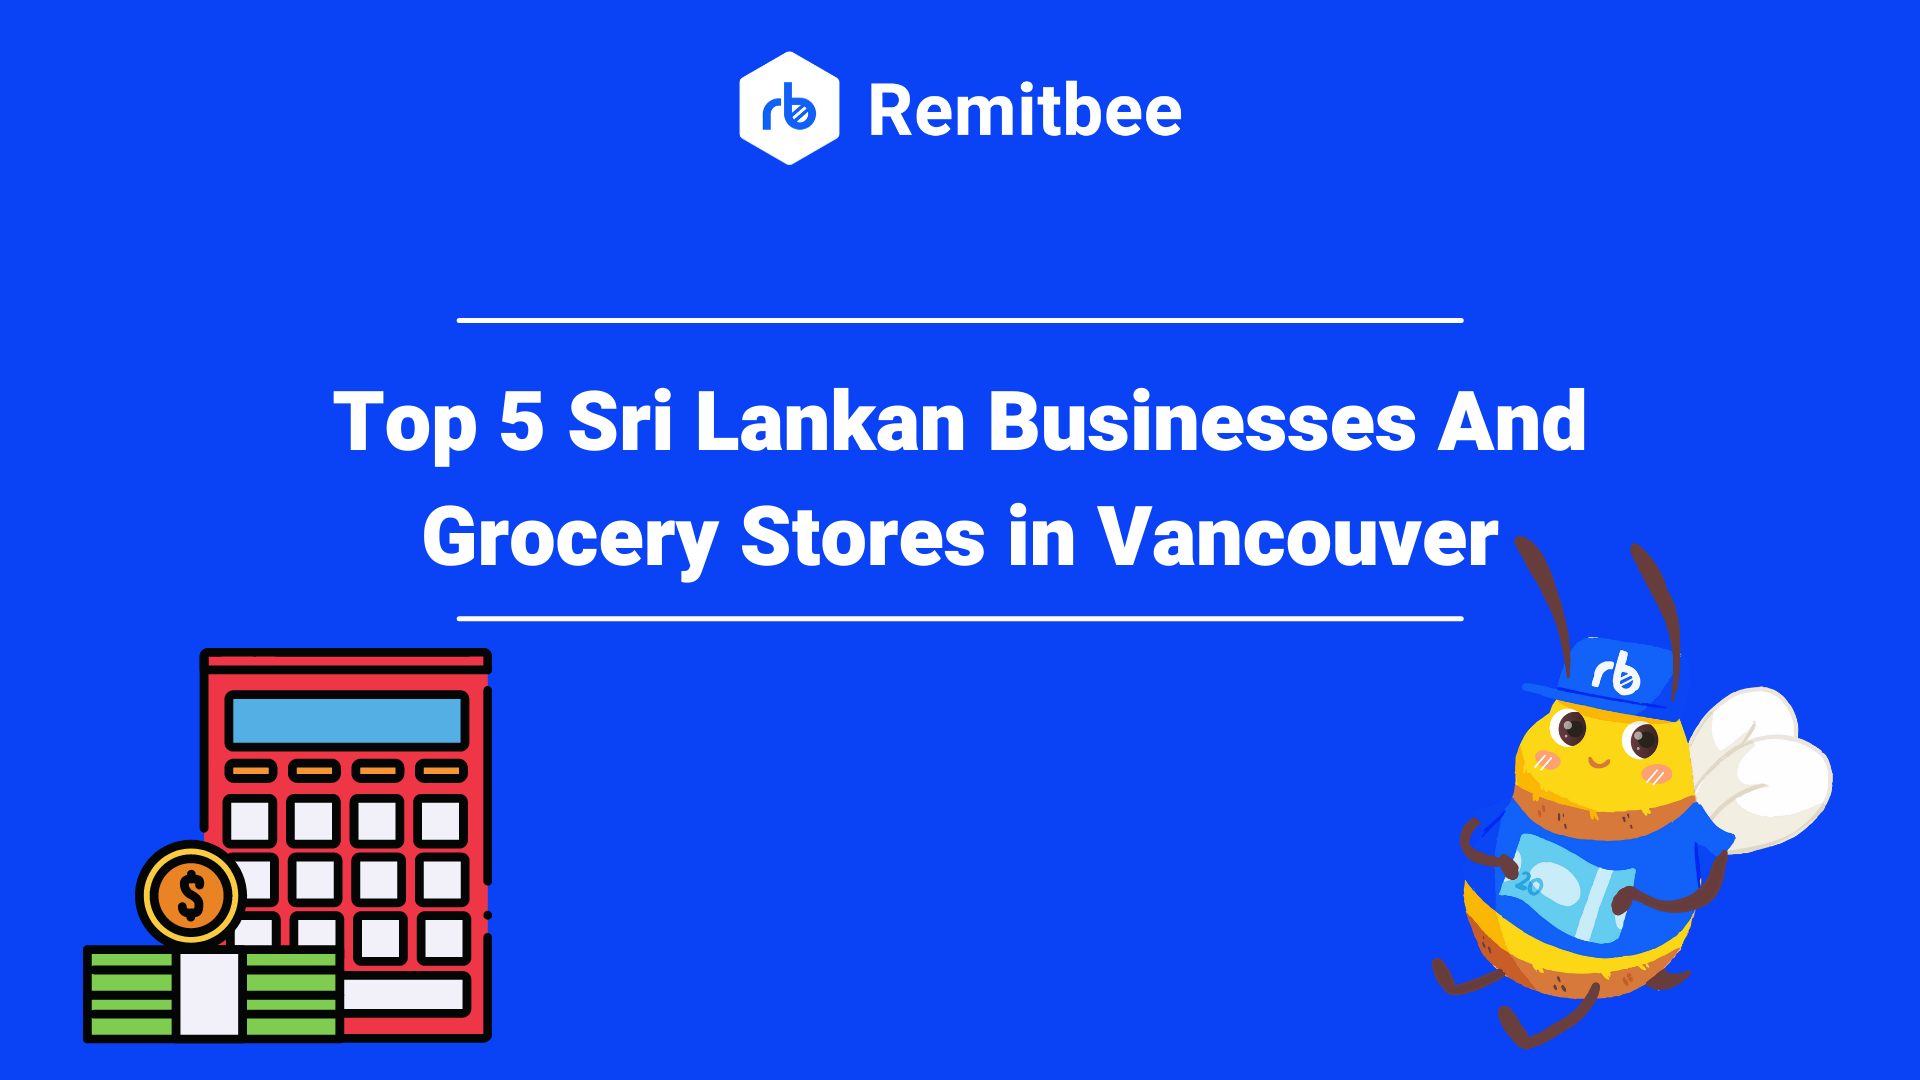 Top 5 Sri Lankan Businesses And Grocery Stores in Vancouver